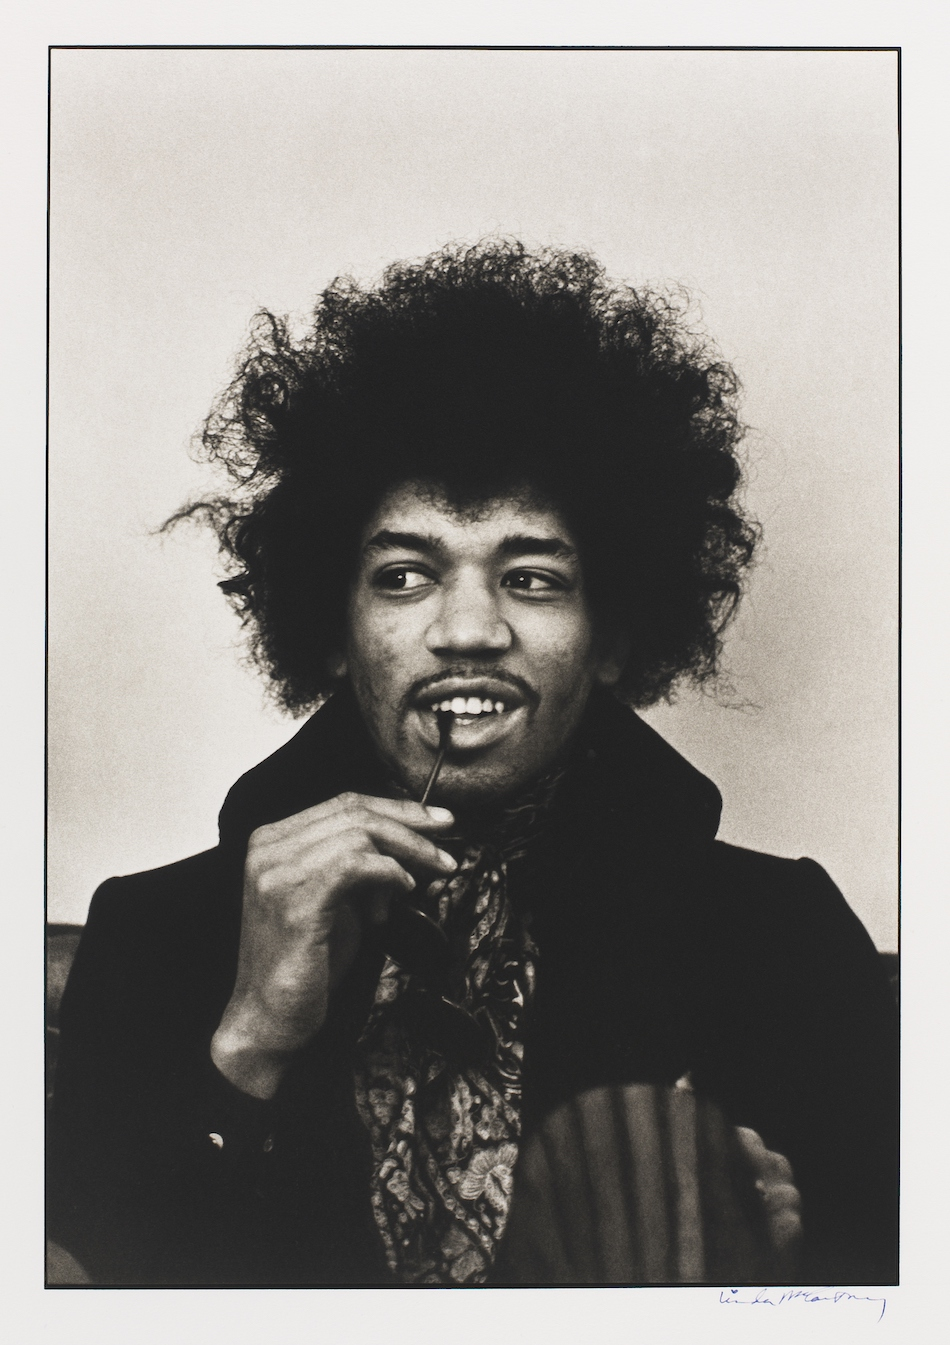 Jimi Hendrix, Hendrix, African American Music, Both Sides Of The Sky, KINDR'D Magazine, KINDR'D, KOLUMN Magazine, KOLUMN